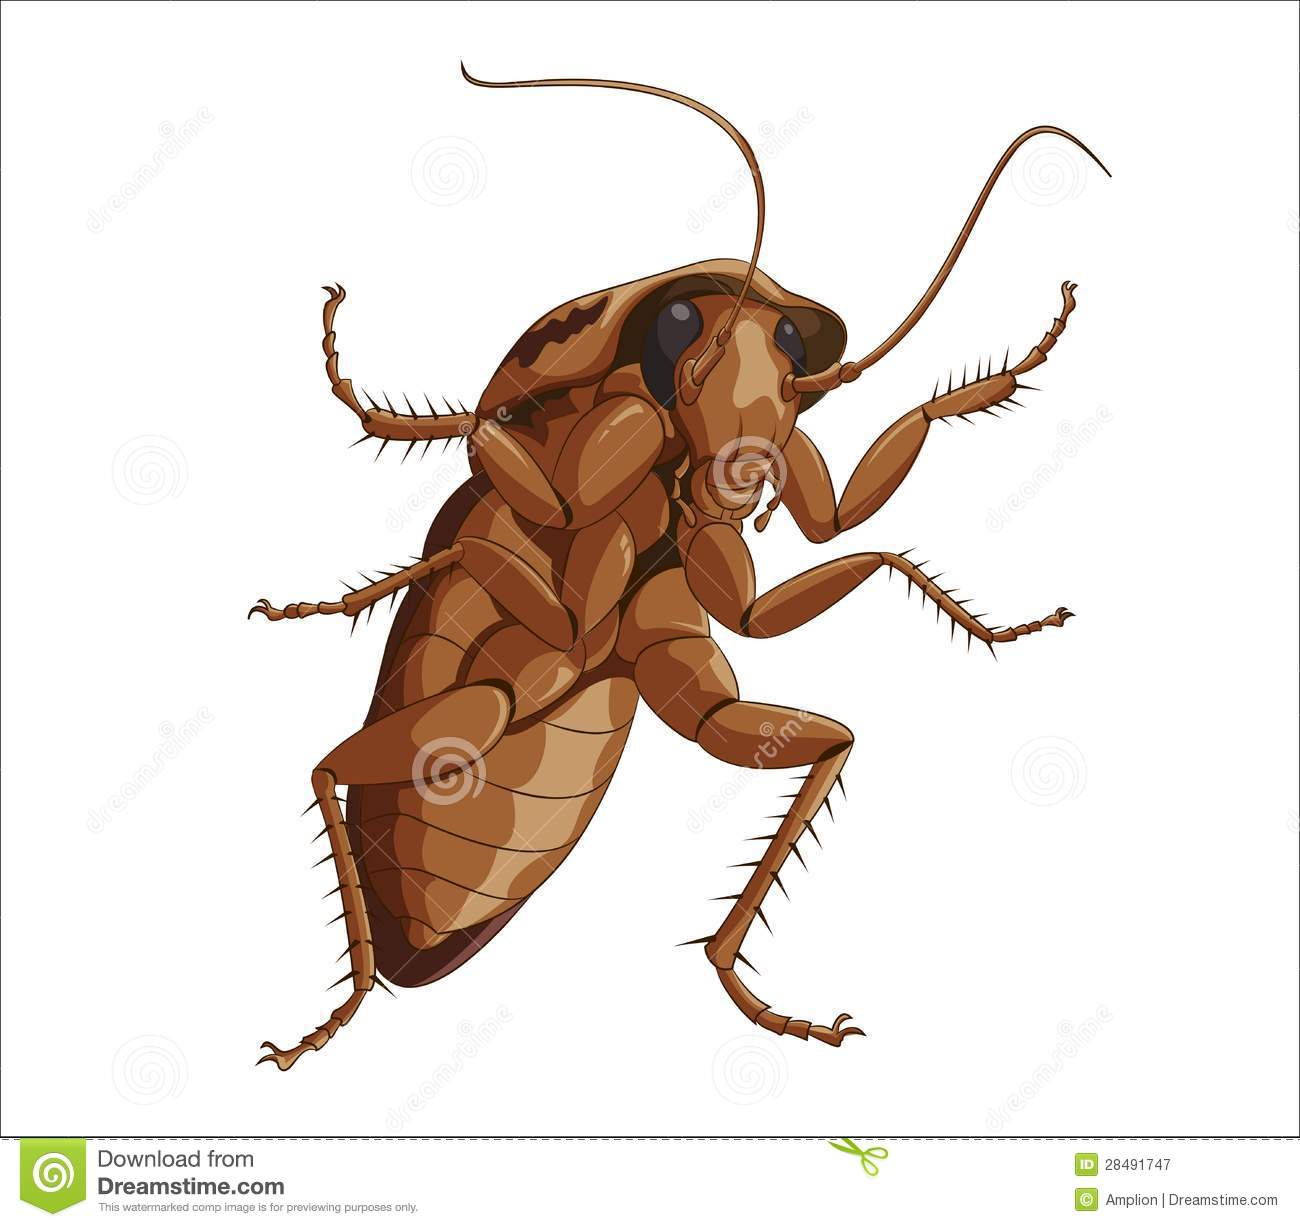 big-roach-28491747 Image Map Tool on facebook tools, geography tools, astronomy tools, hotel tools, food tools, gis tools, compass tools, multimedia presentation tools, road sign tools, art tools, survey tools, service tools, travel tools, information tools, drawing tools, drafting tools, web tools, surveyor tools, weather tools, search tools,